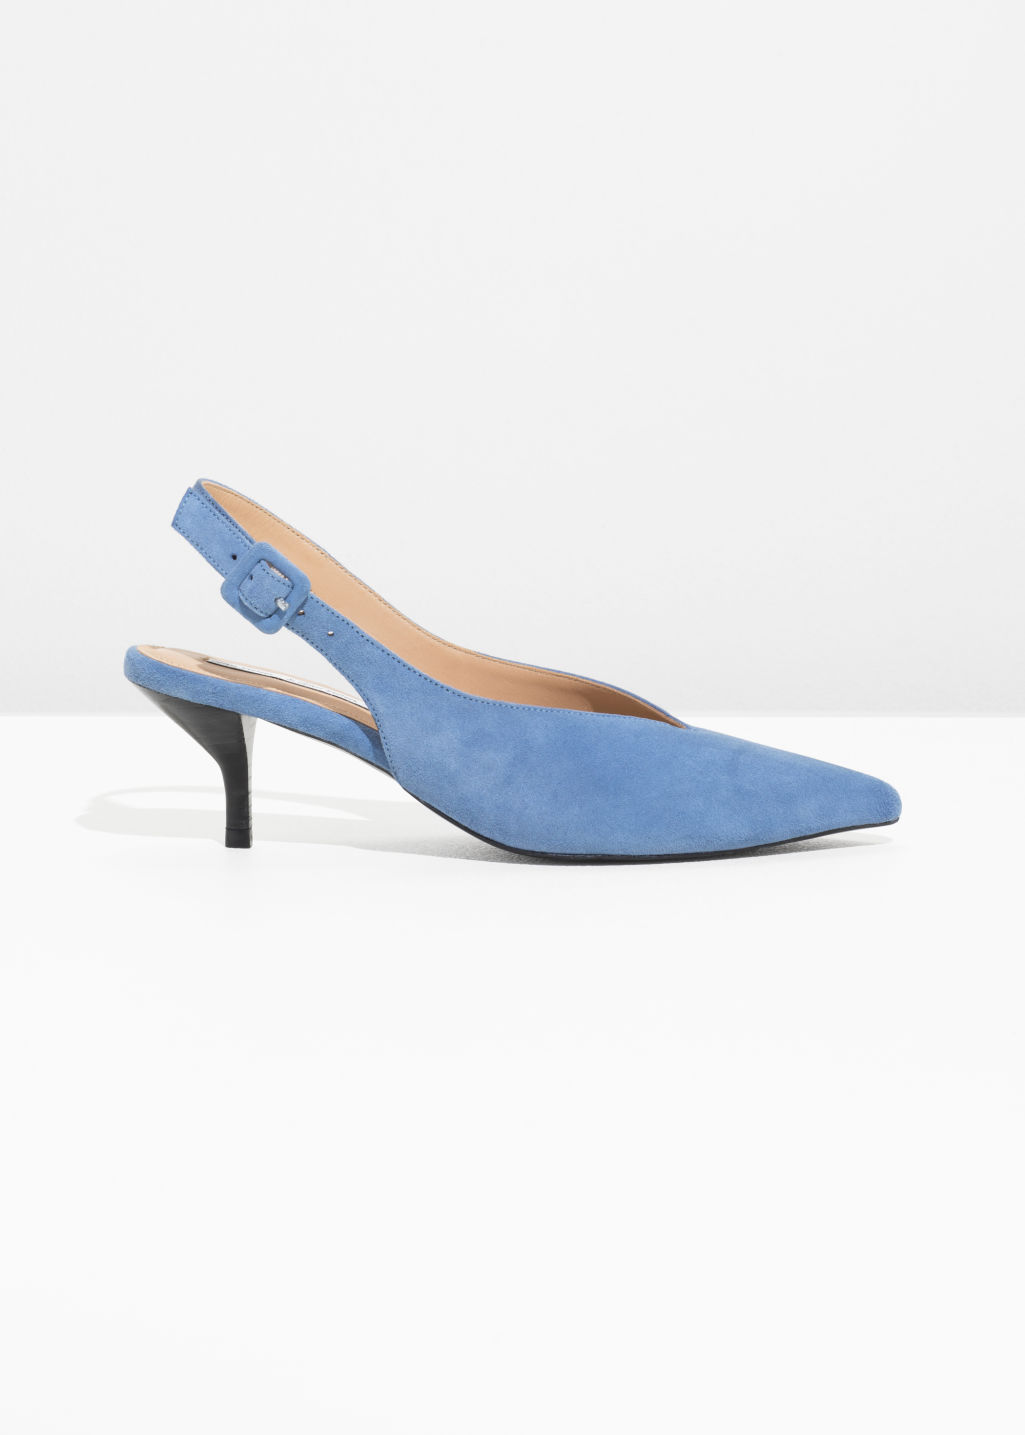 & OTHER STORIES Pointed Heels - Blue Compre barato por barato qjbmX